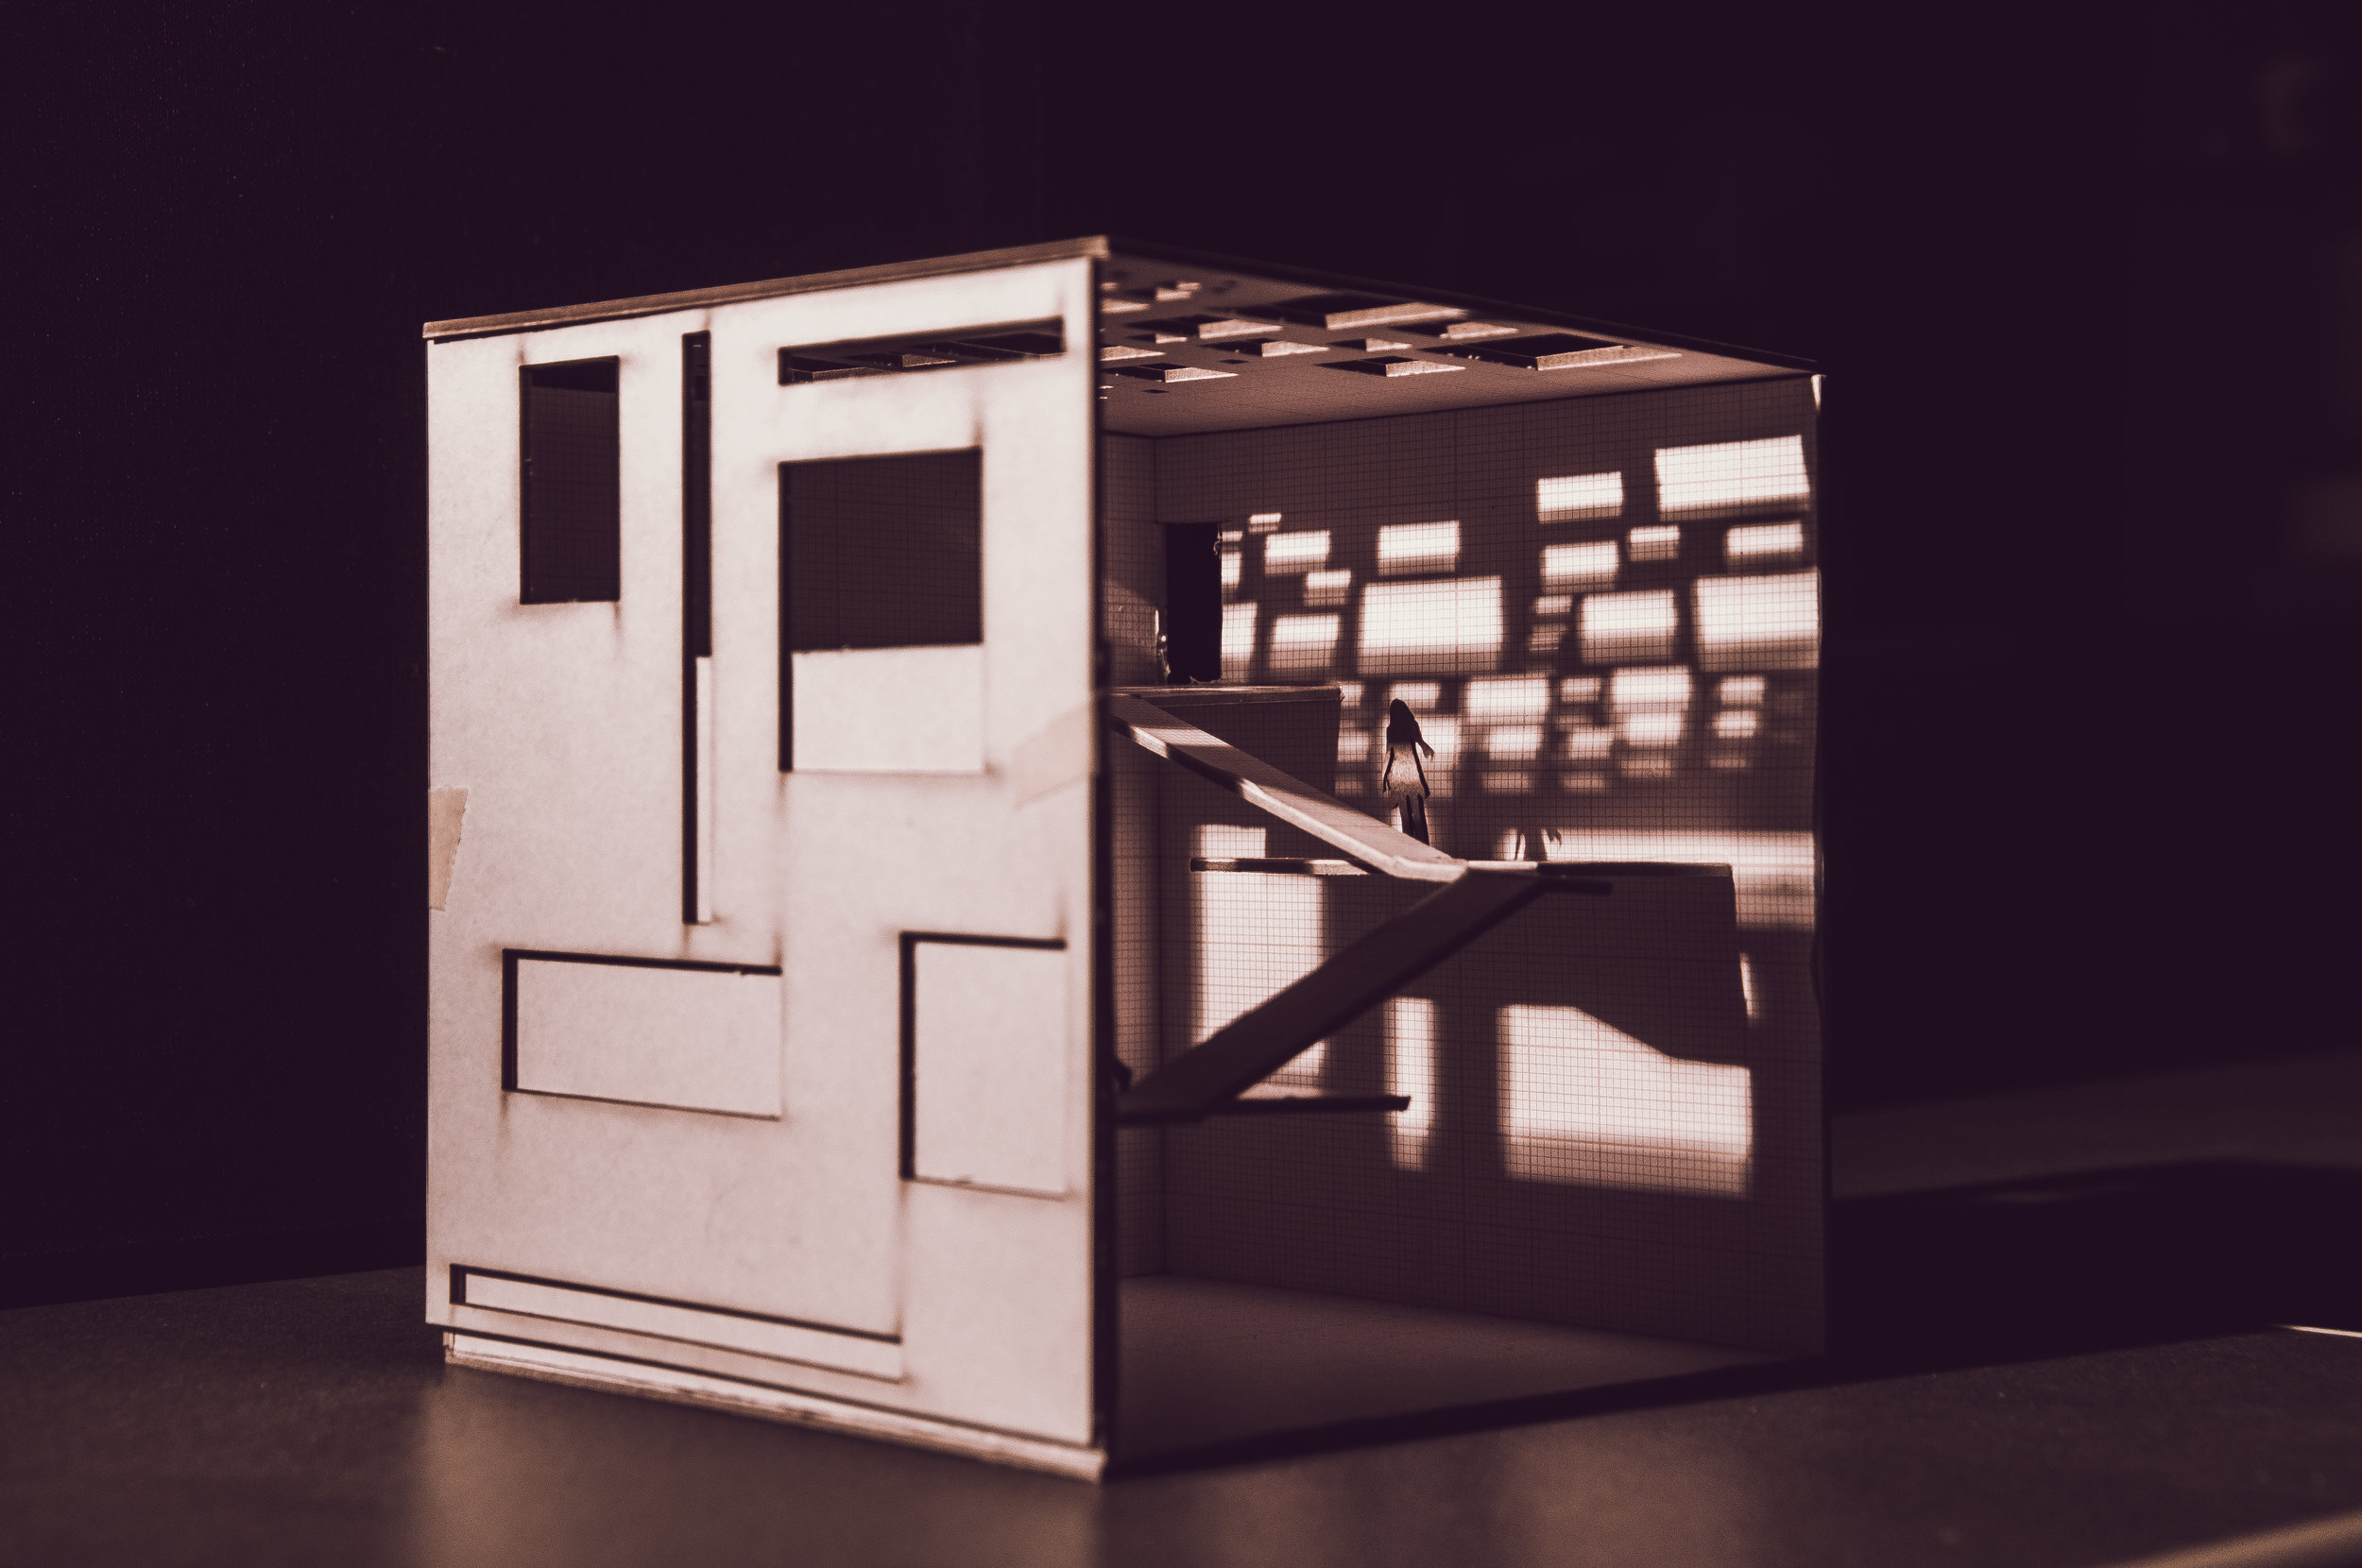 I made this concept model with the intention of the building as an object that manipulates light.